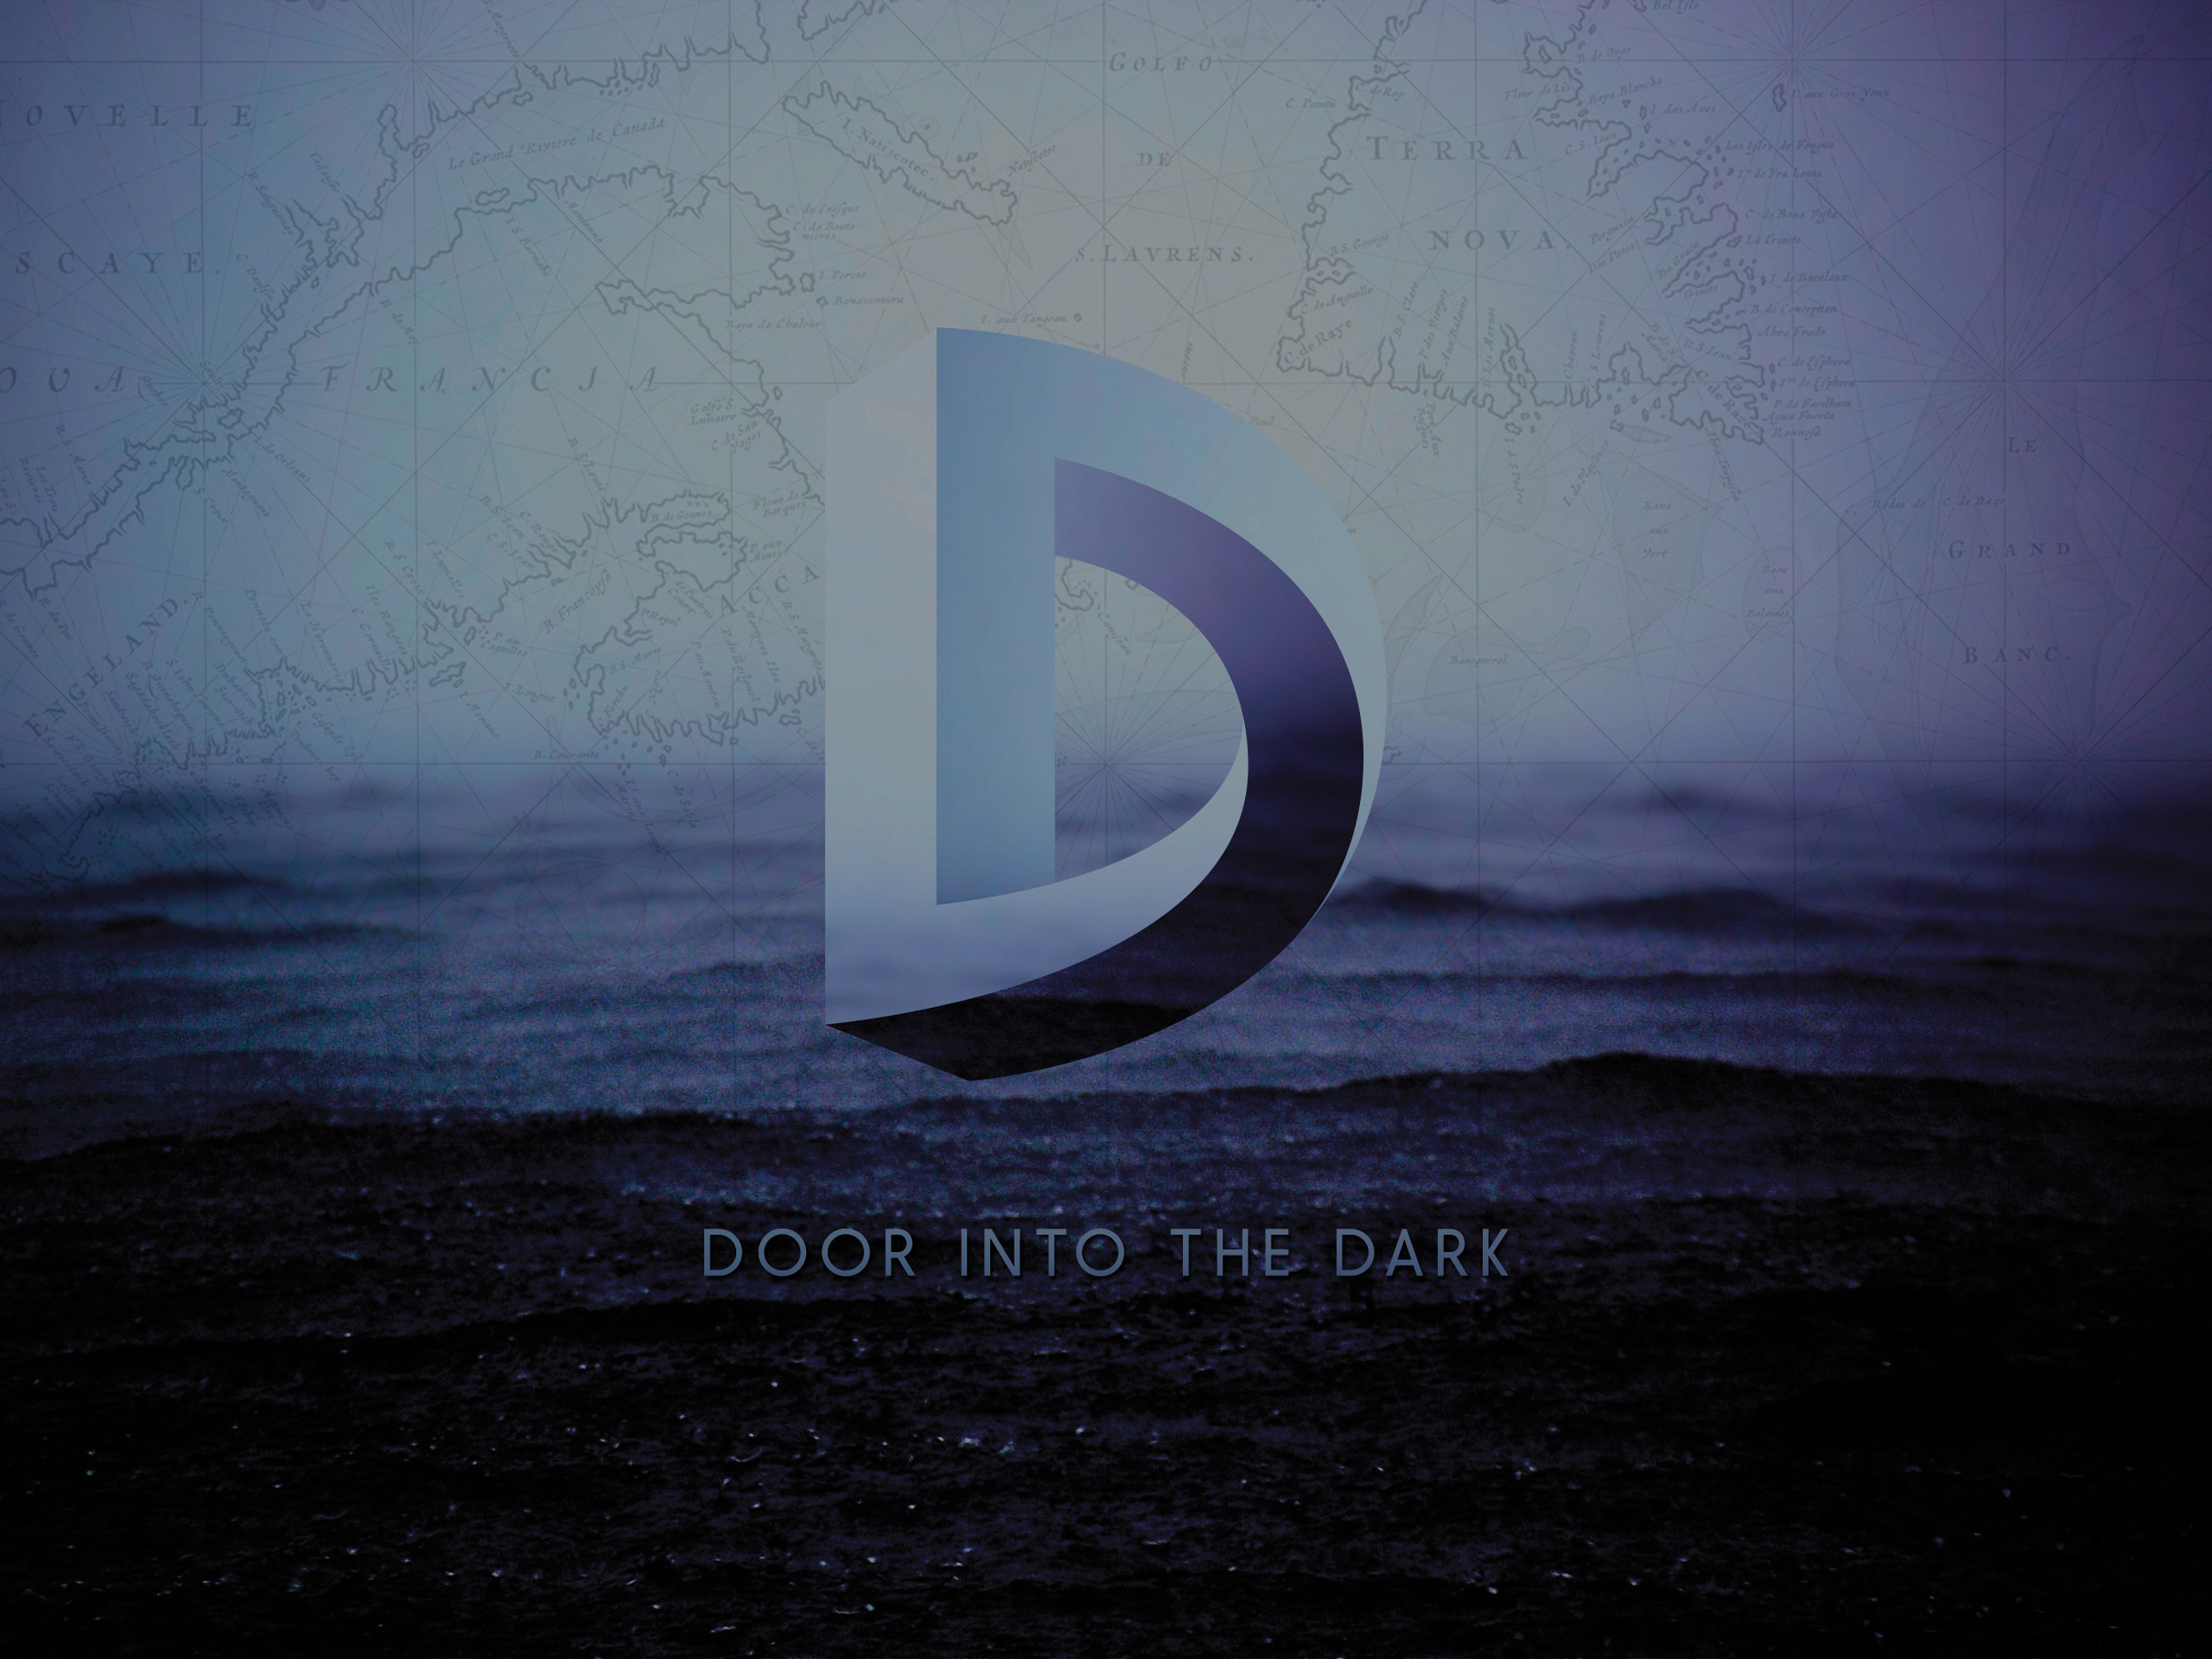 DoorIntotheDark_press_1.jpg